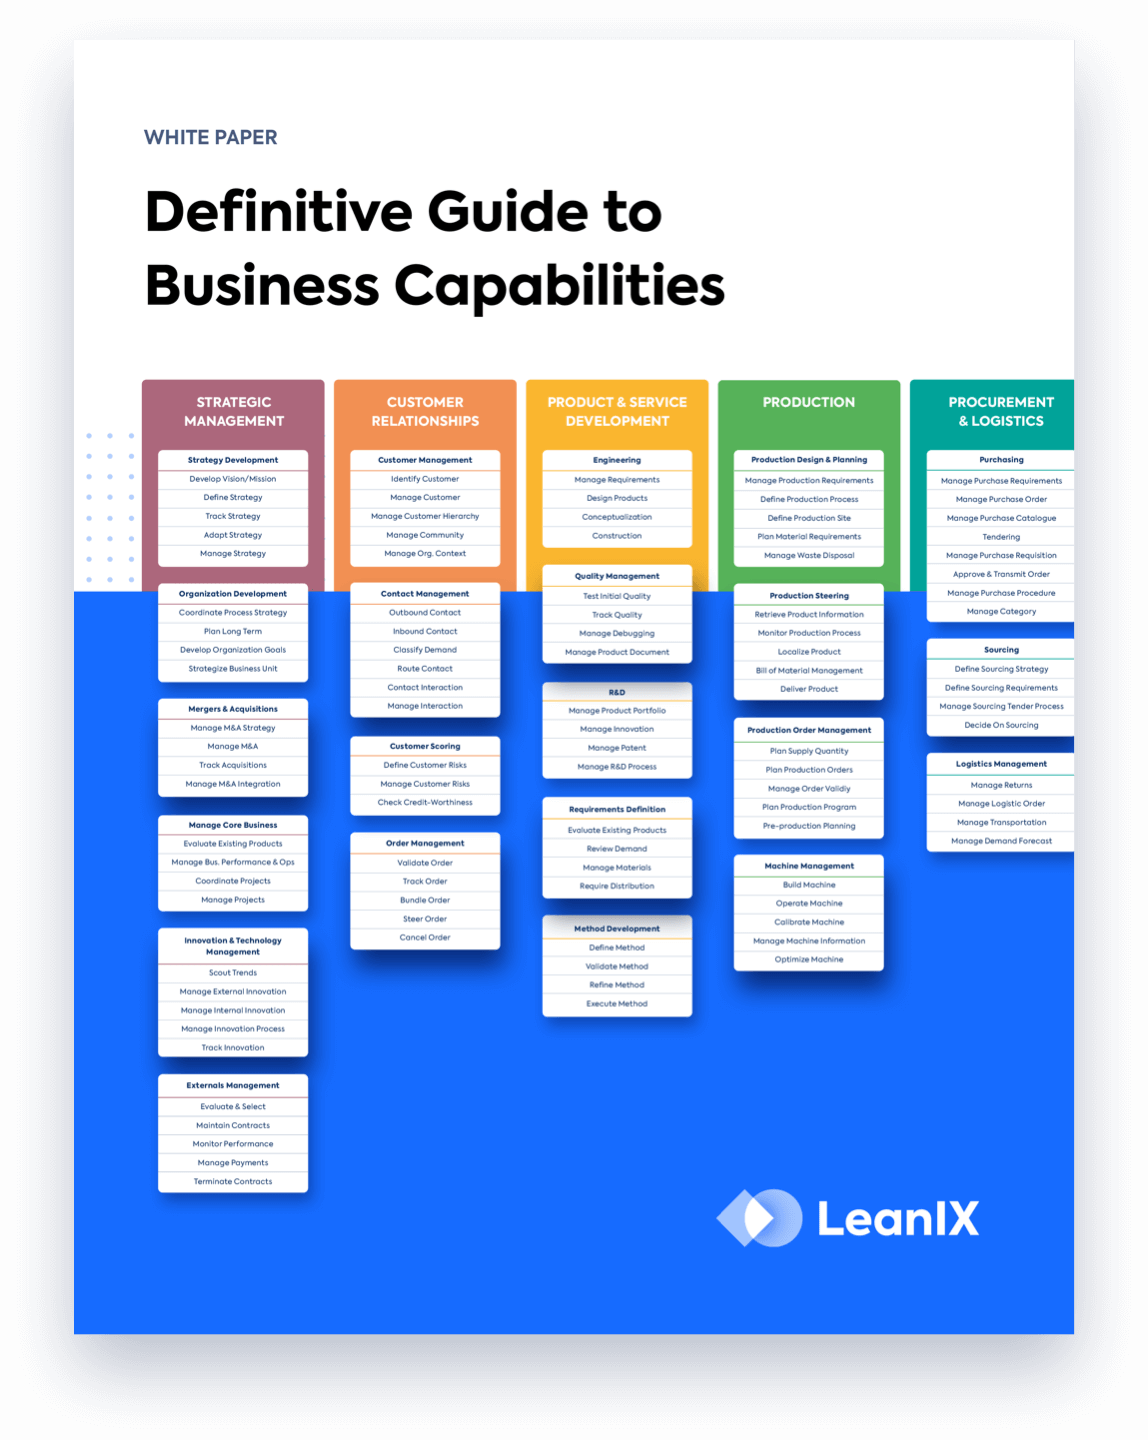 The Definitive Guide to Business Capabilities